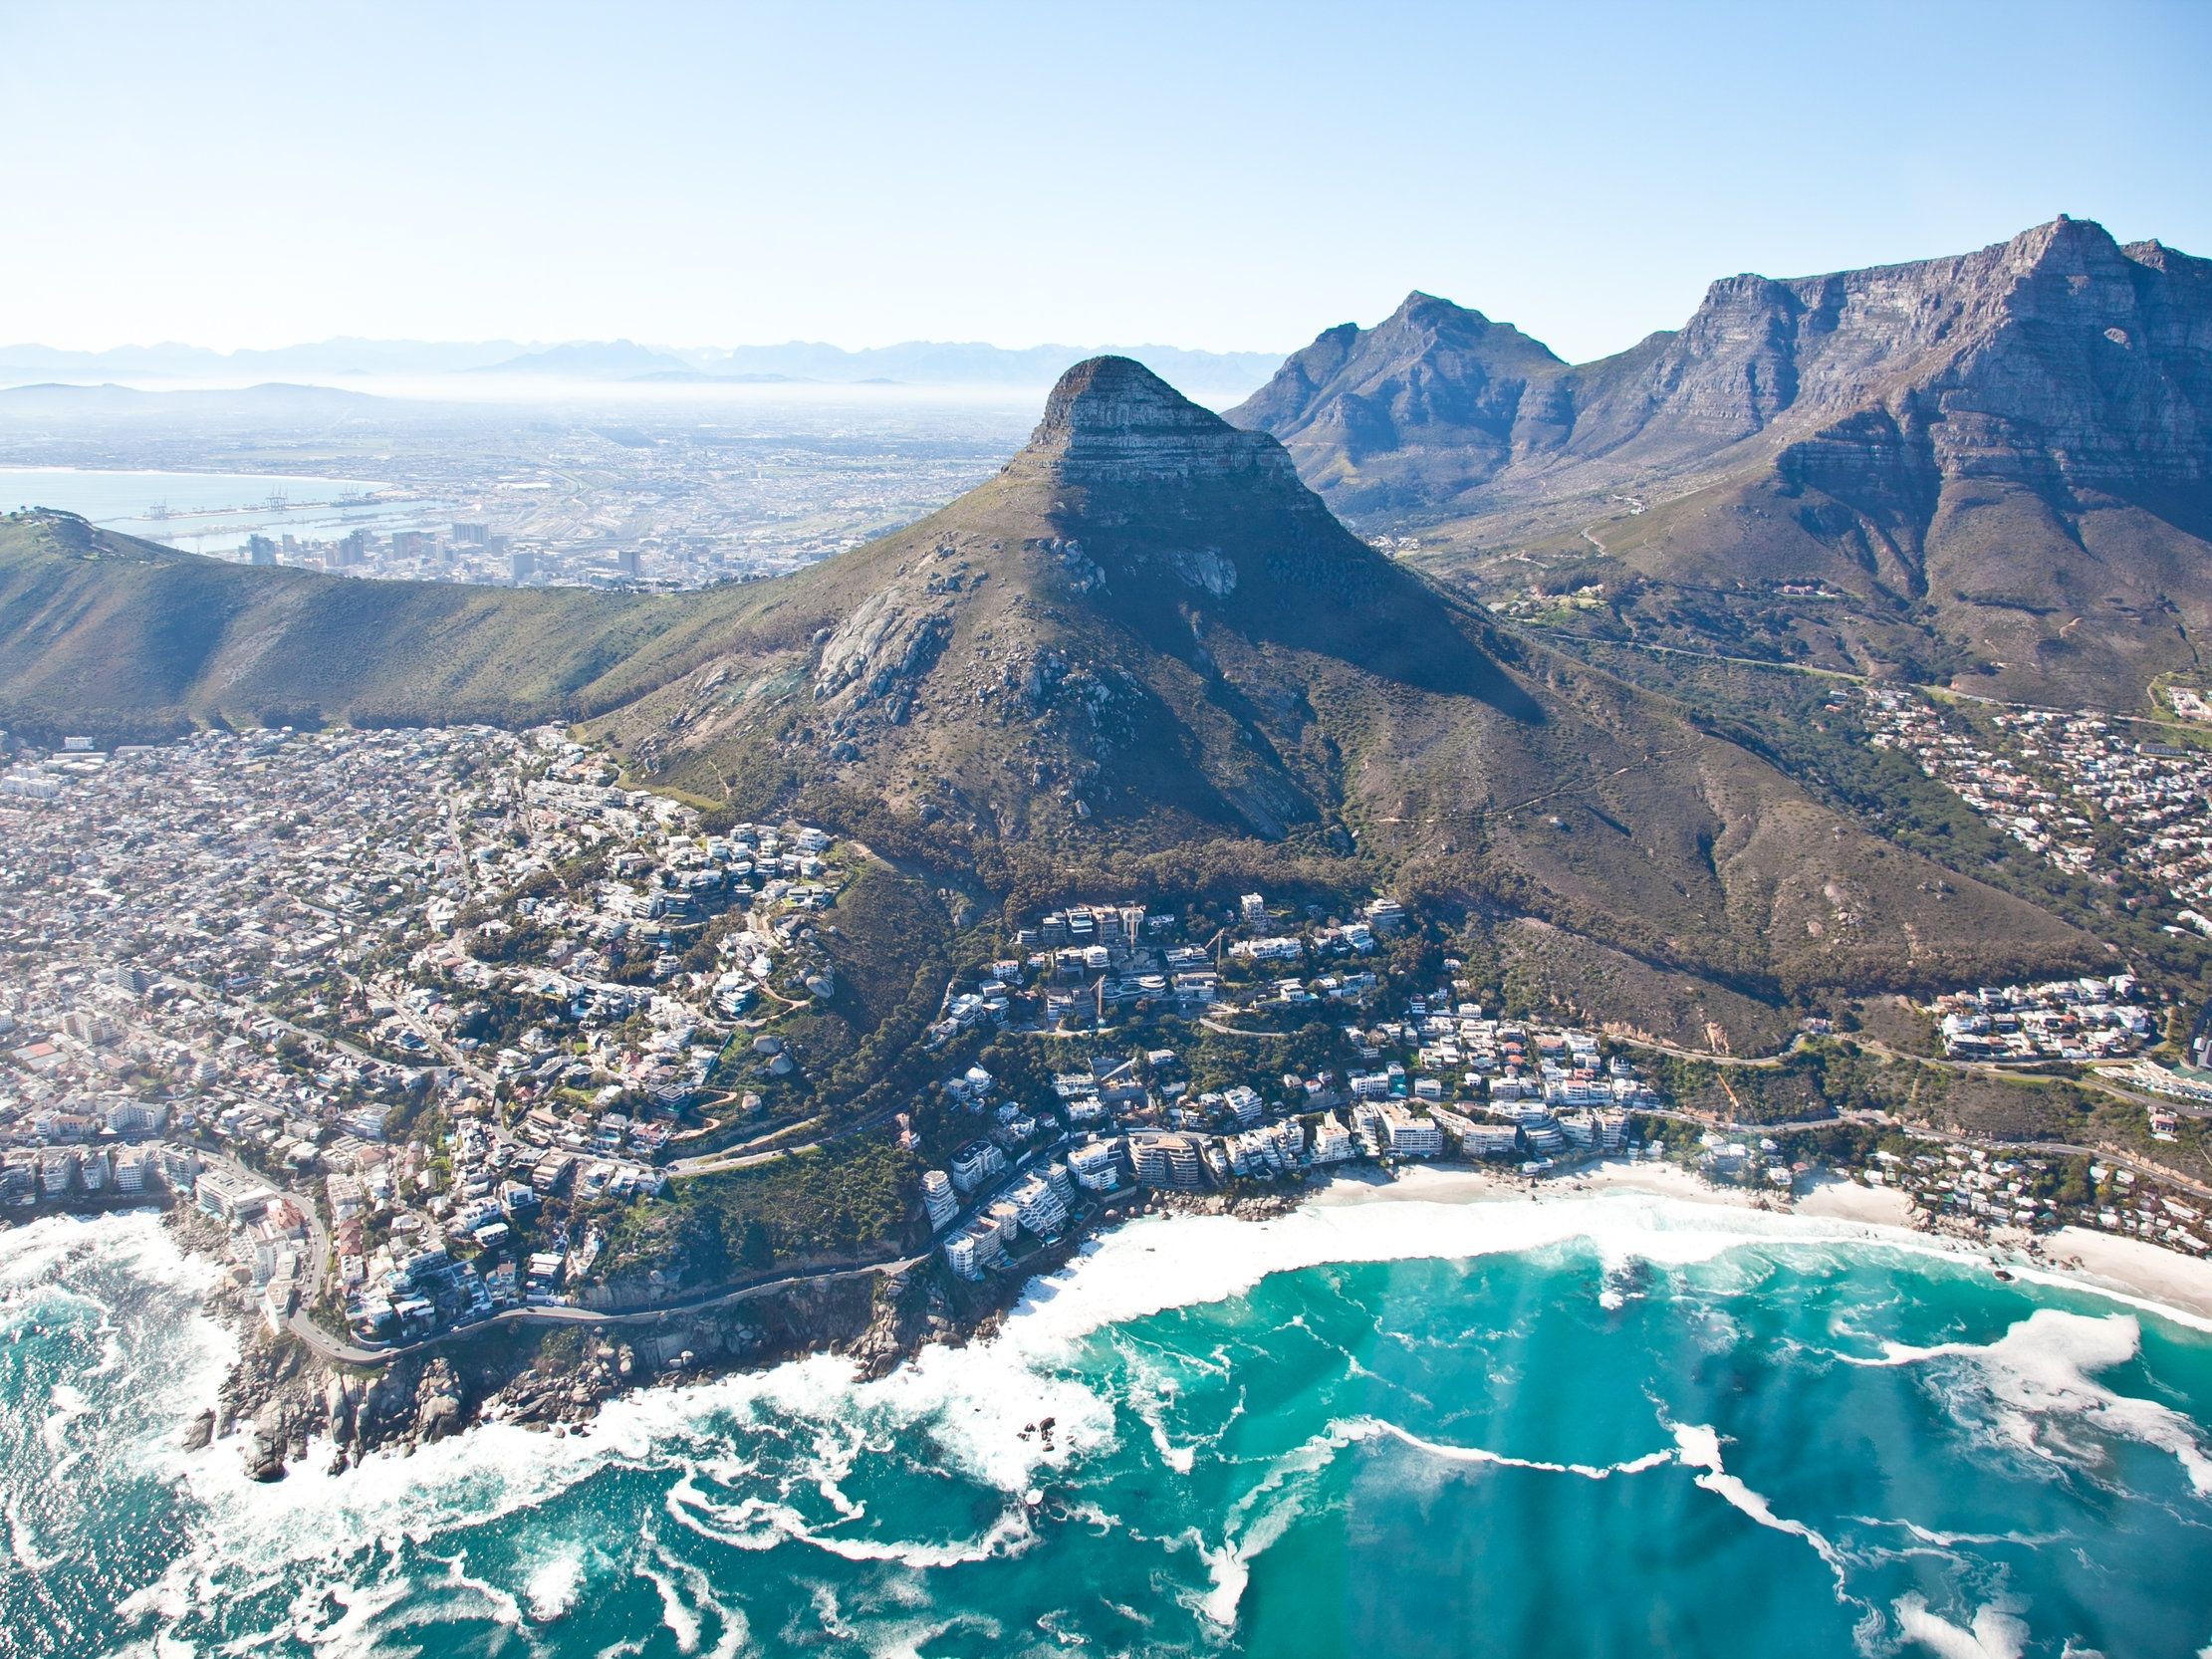 Cape Town - Nowhere will steal your heart quite like Cape Town. The Mother City was blessed with thrice over by Mother Nature, with its majestic Table Mountain, sprawling lands that give way to beautiful cityscapes and breathtaking golden coast.